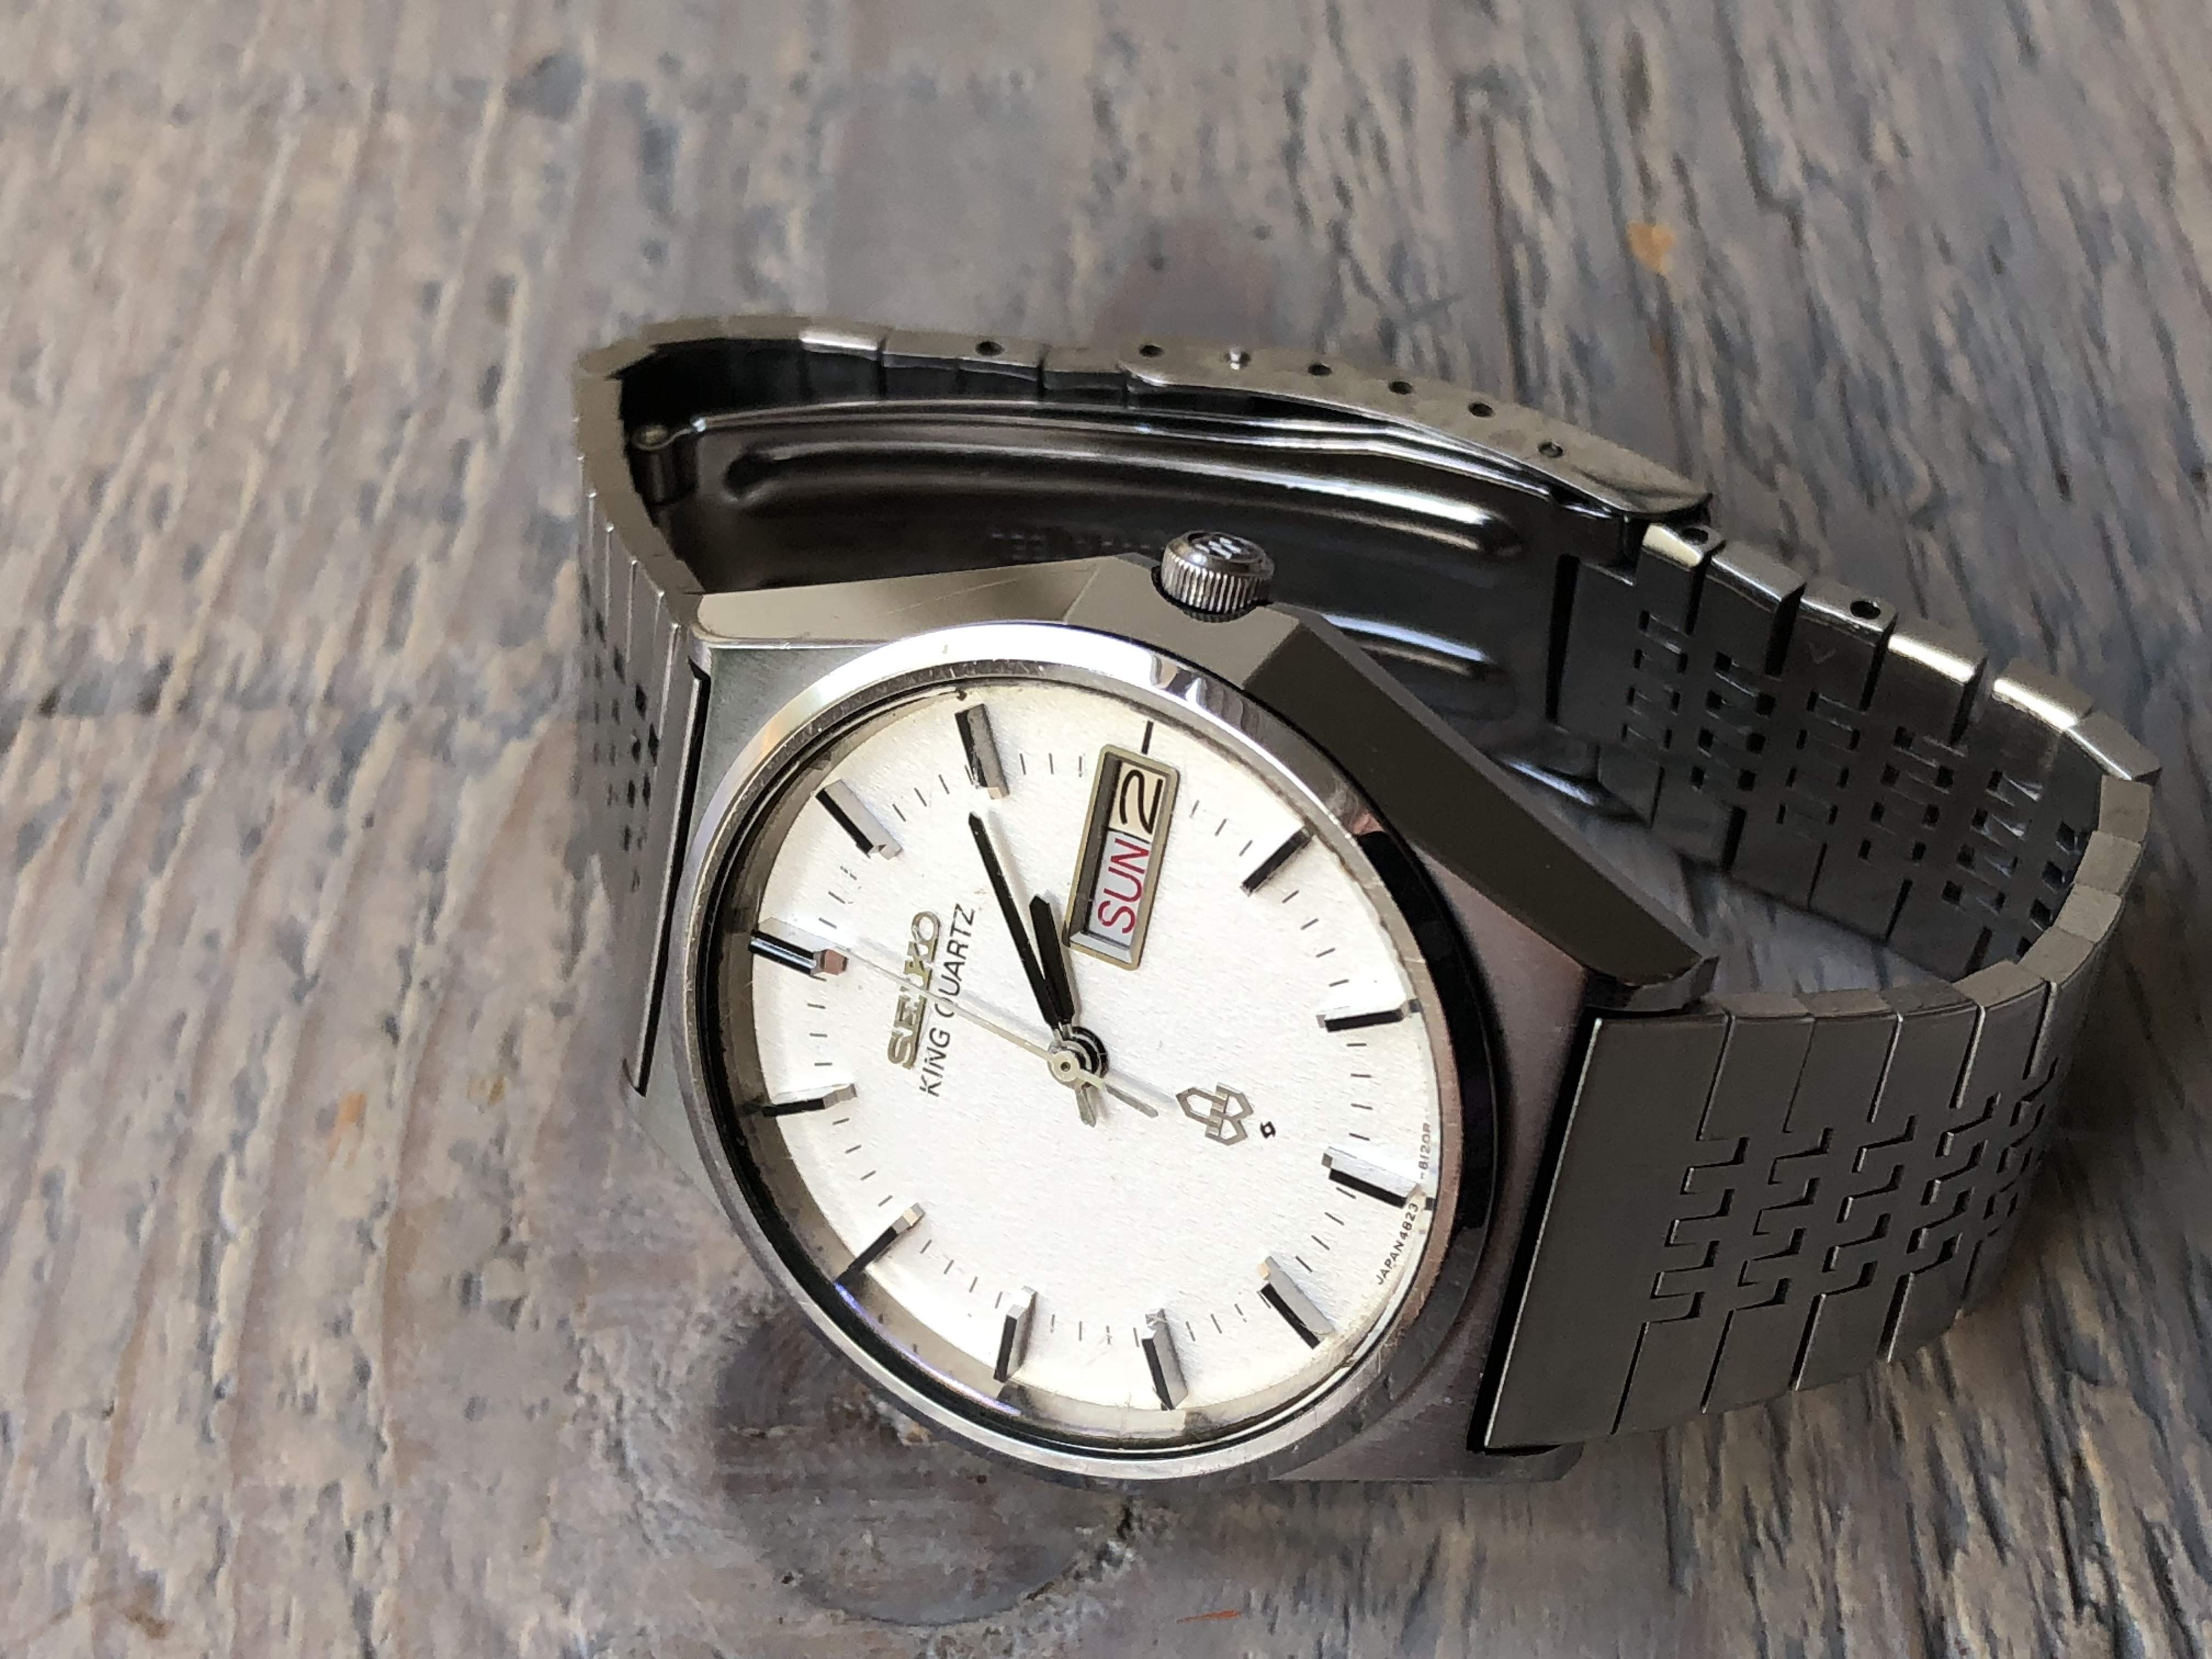 Seiko King Quartz 4823-8120 (Sold)